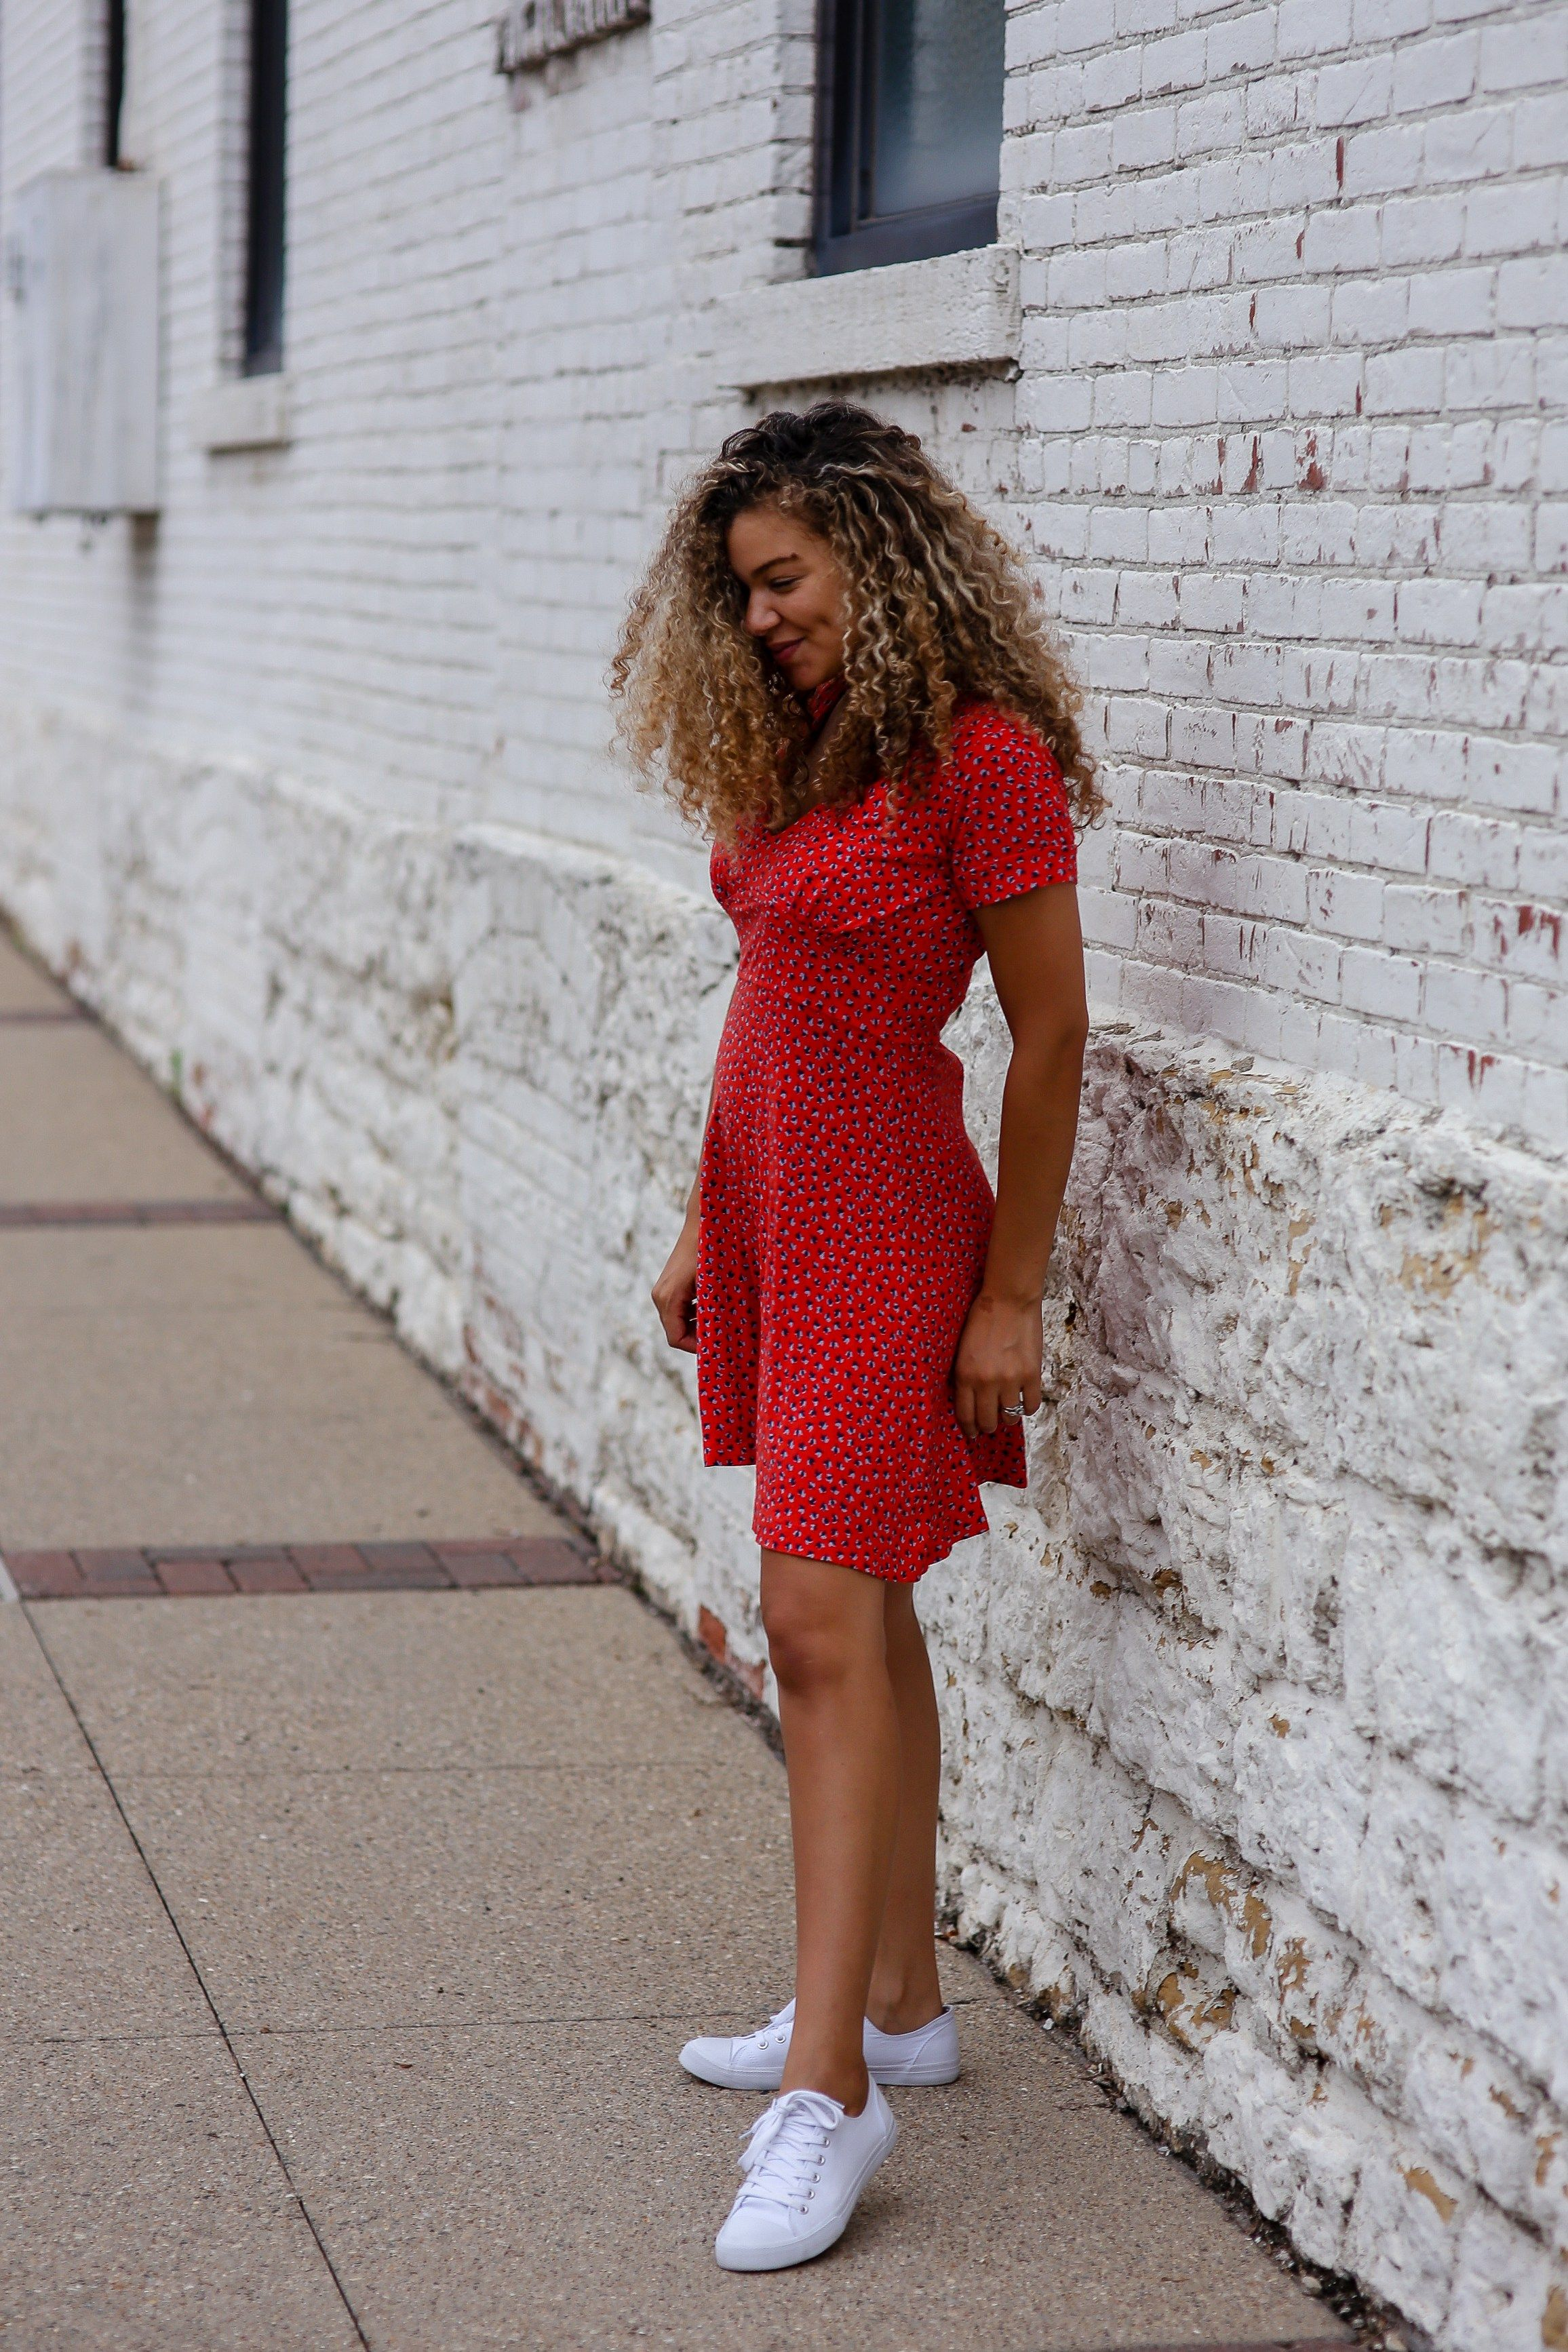 red dress white shoes Red Dress and Sneakers - MY CHIC OBSESSION | Dress and sneakers outfit, Red  dress outfit, Dress with sneakers